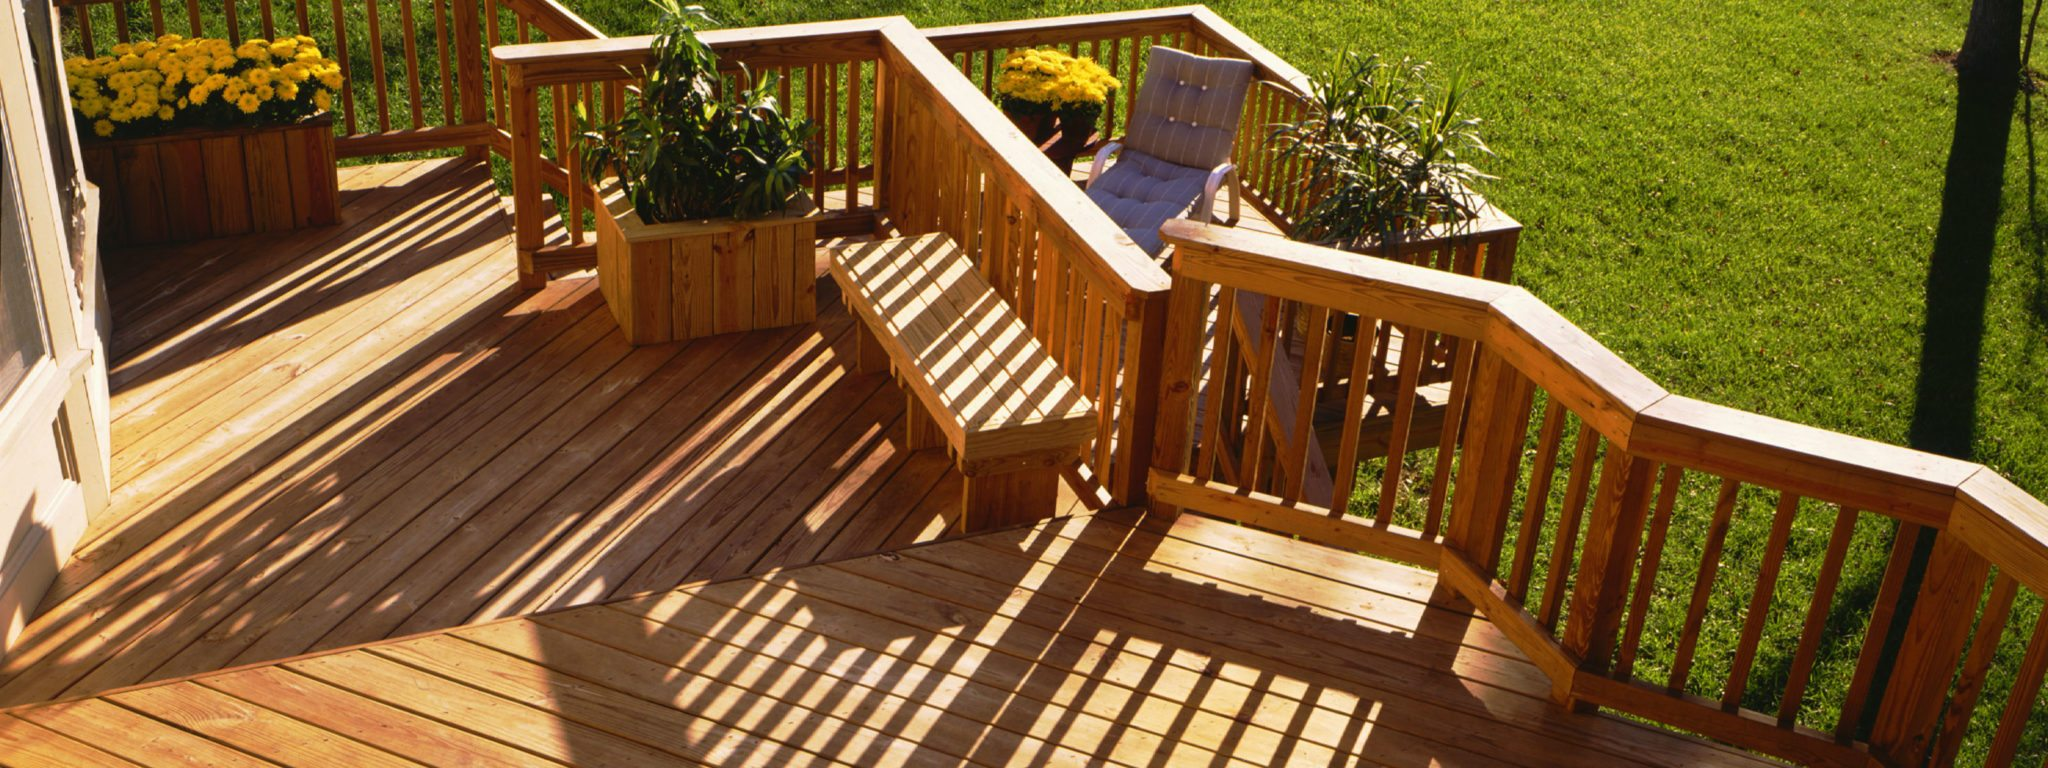 Outdoor Living Supplies In Raleigh Nc Capitol City Lumber